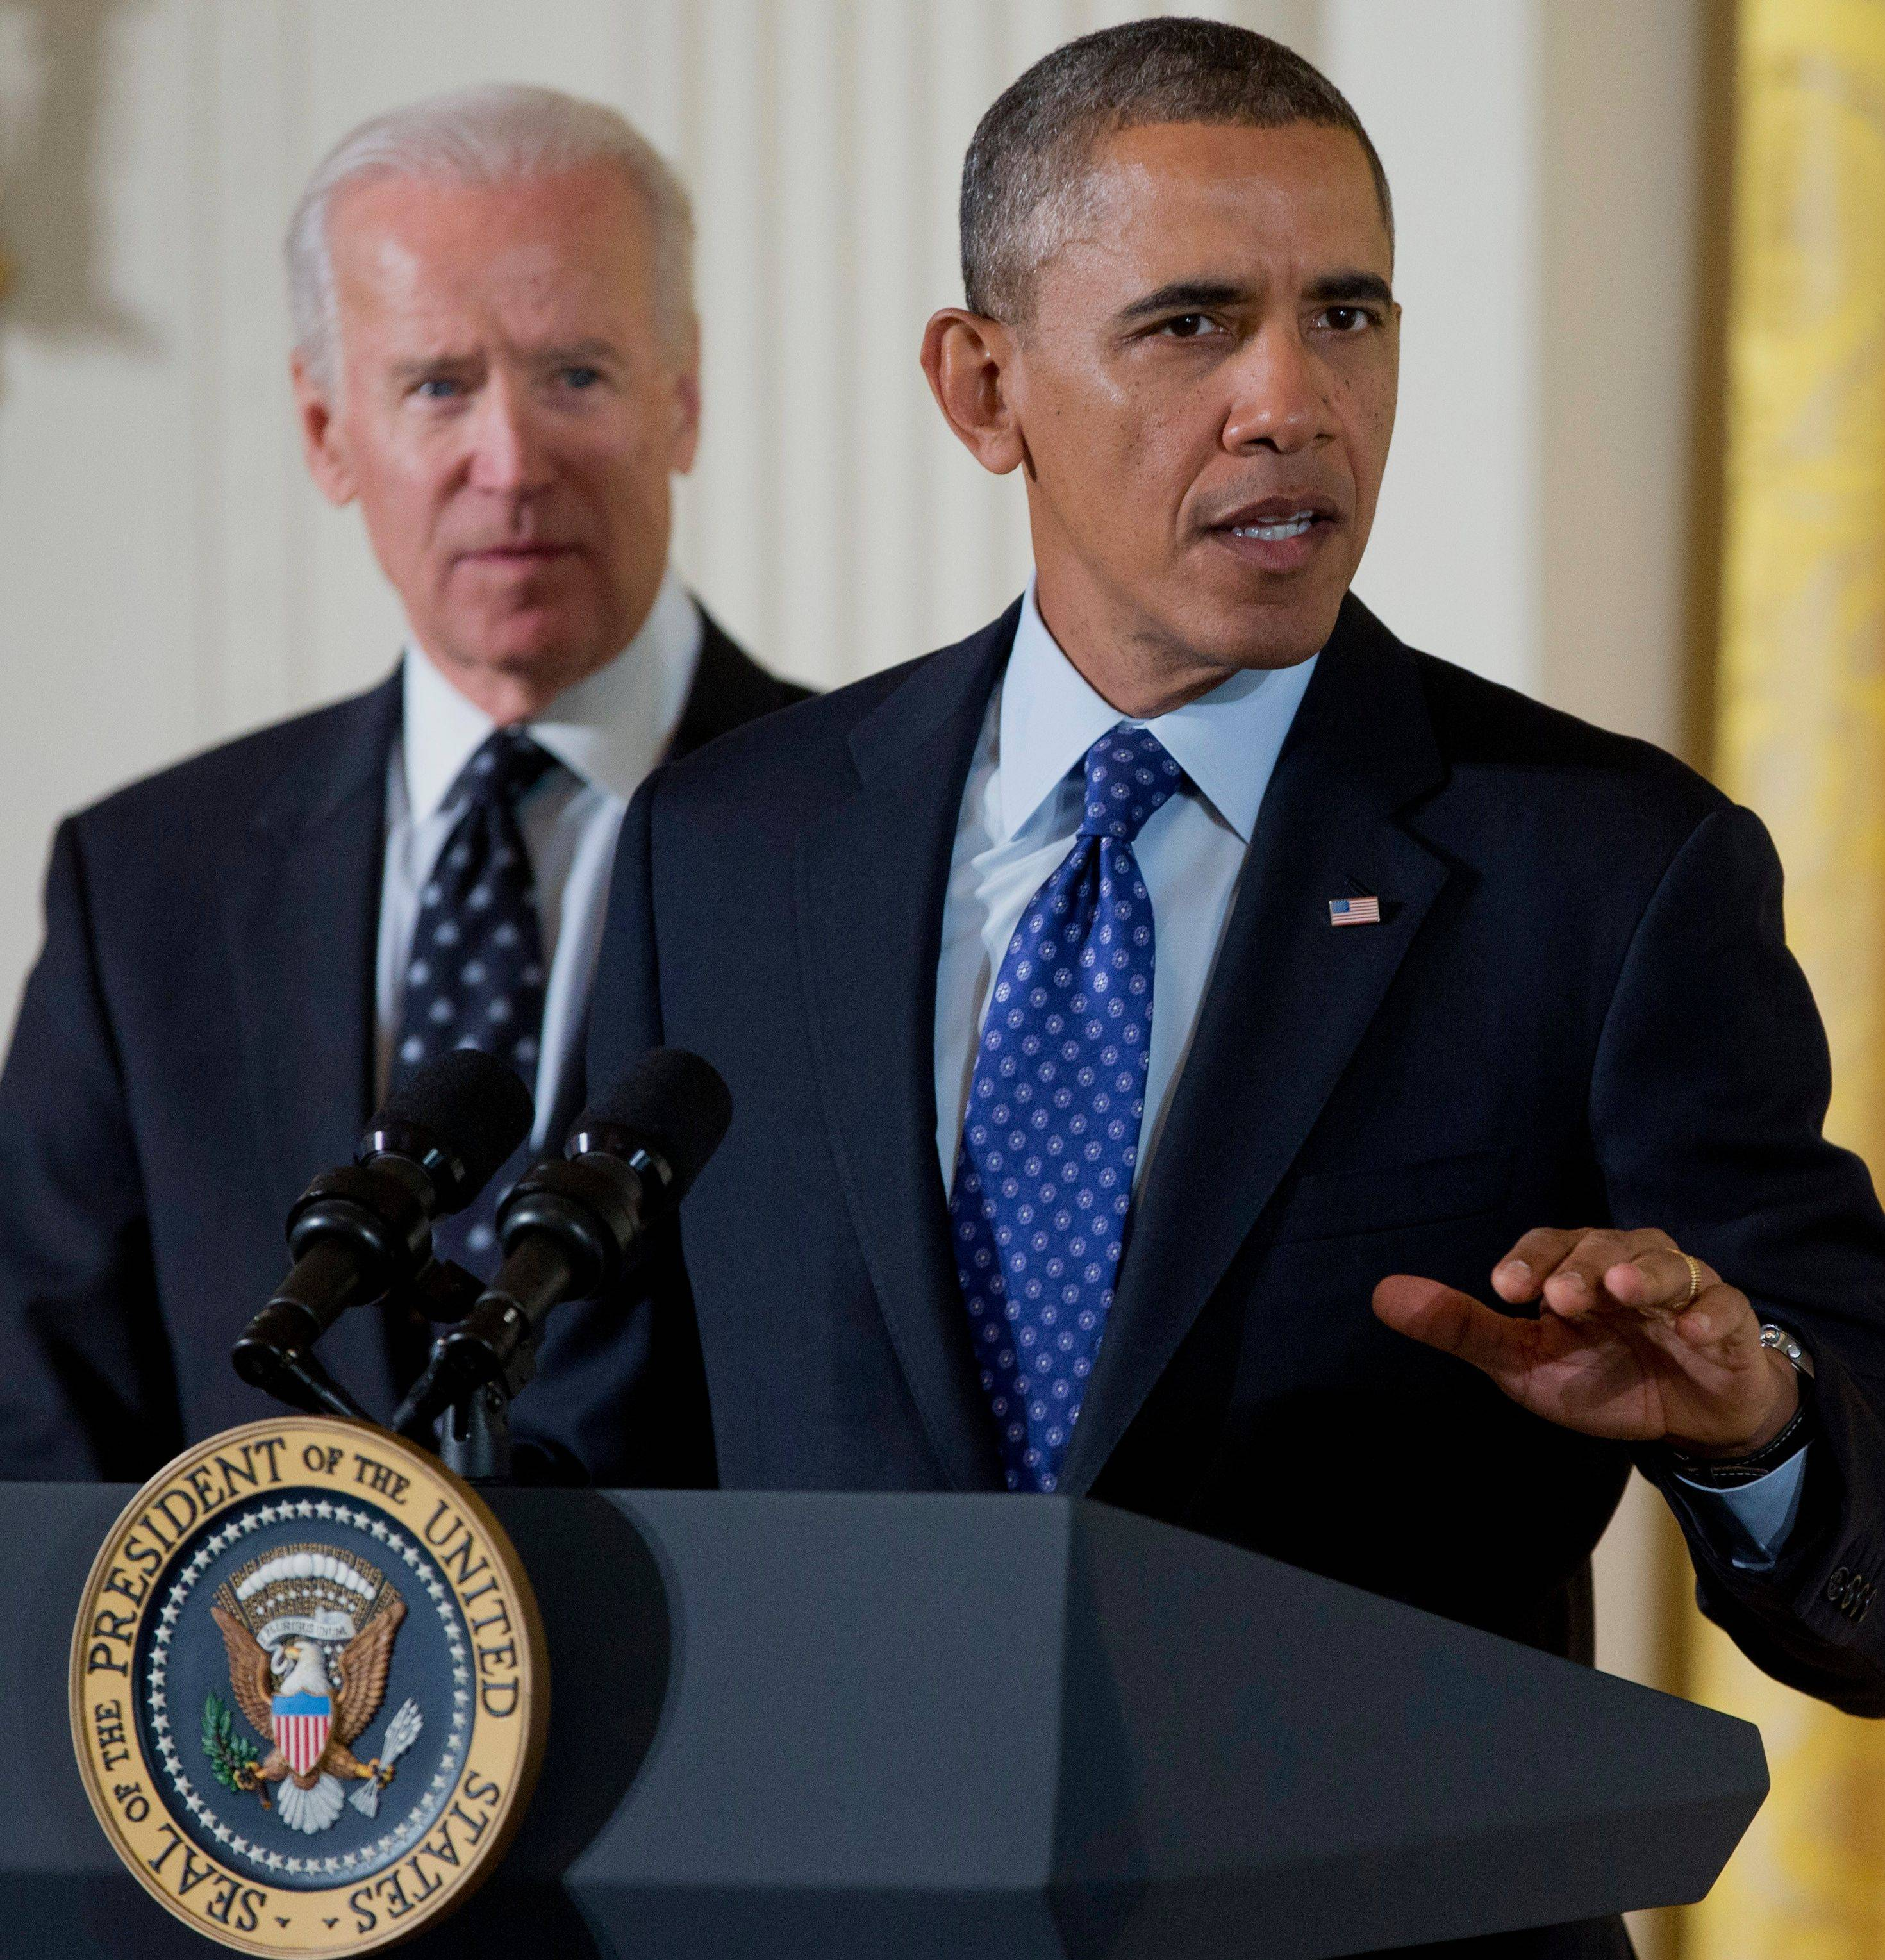 President Barack Obama, accompanied by Vice President Joe Biden, focused on the problem of campus sexual assaults Wednesday before signing a memorandum creating a task force to respond to the issue.